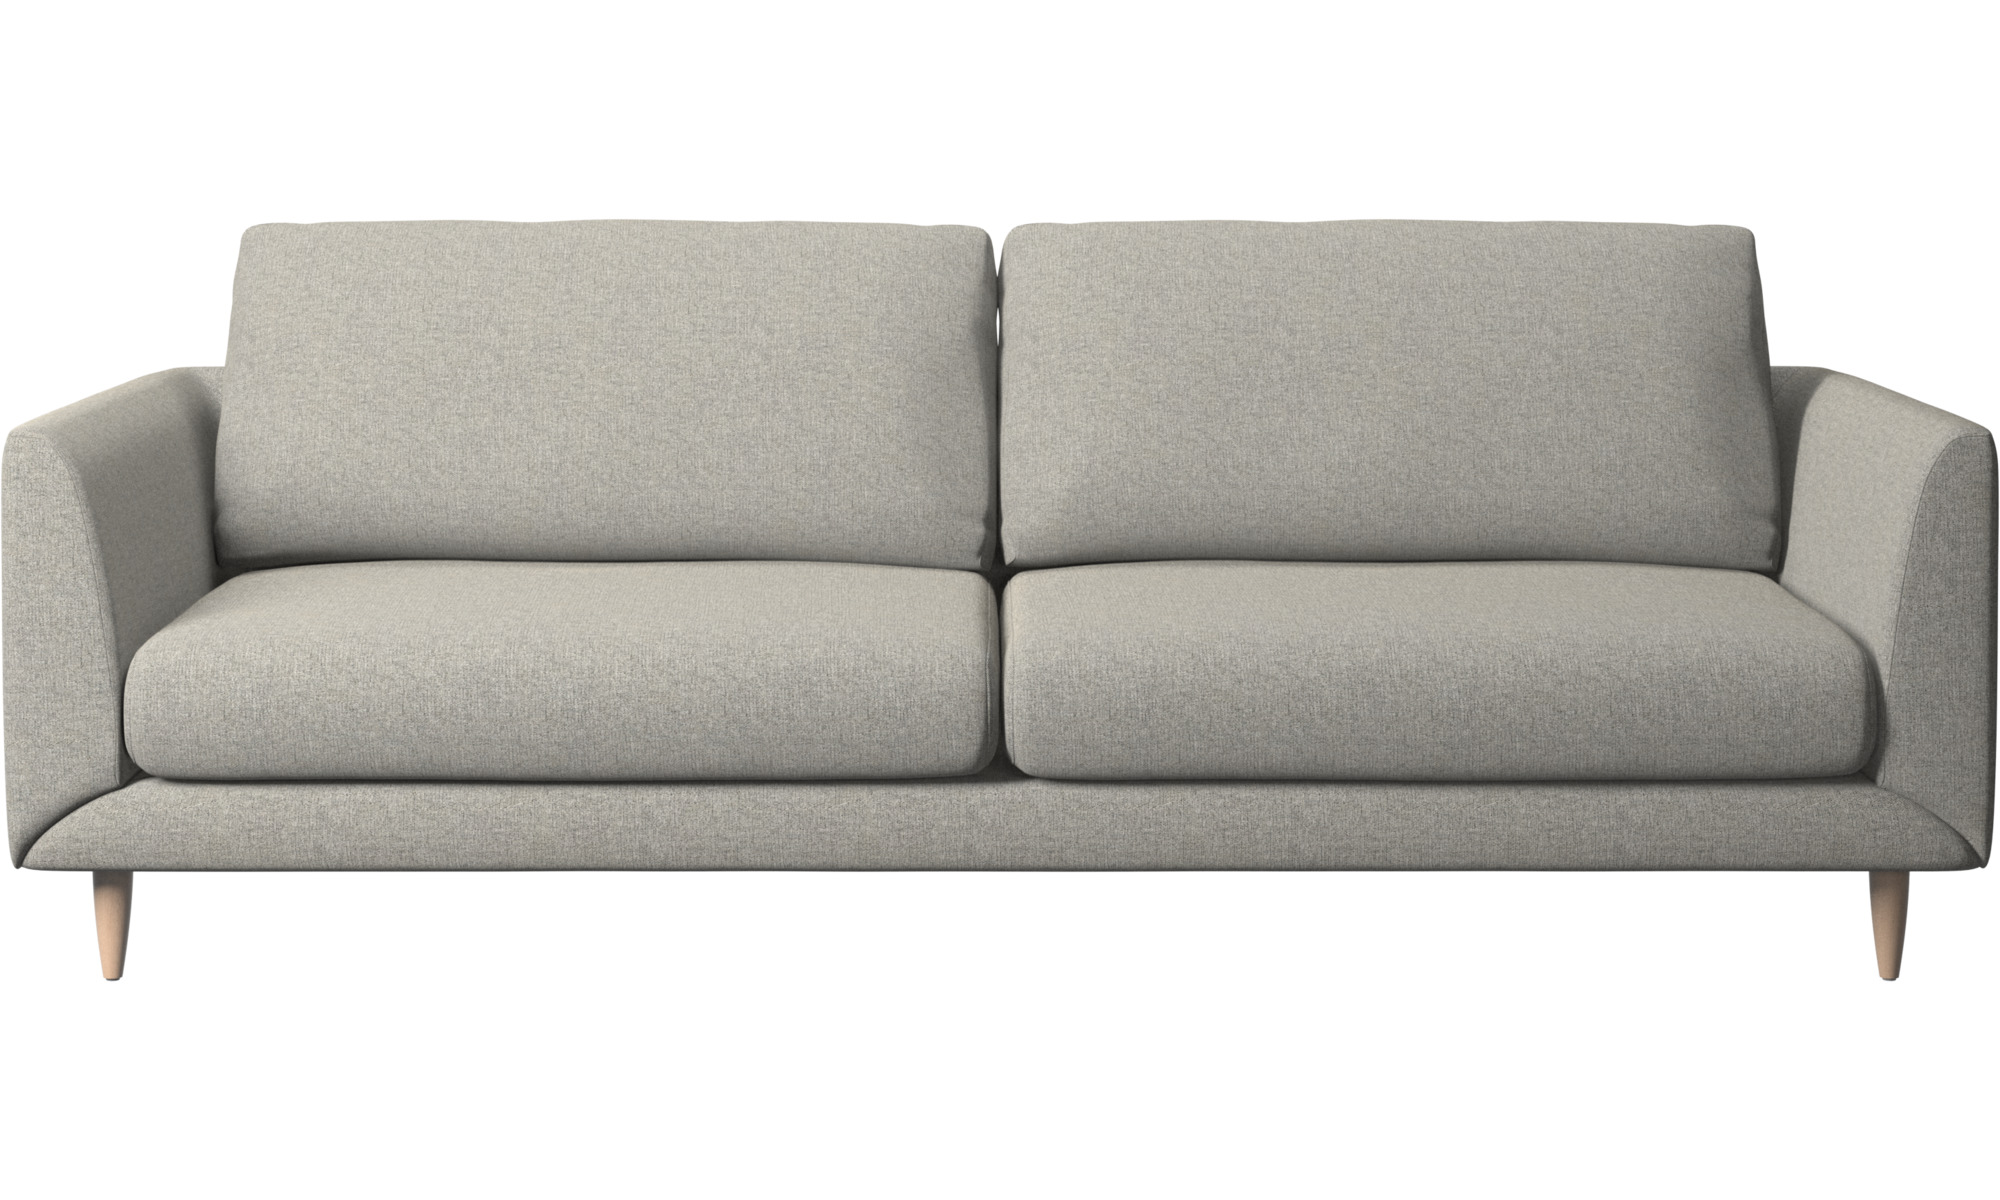 Sofa Cover (7 pieces)